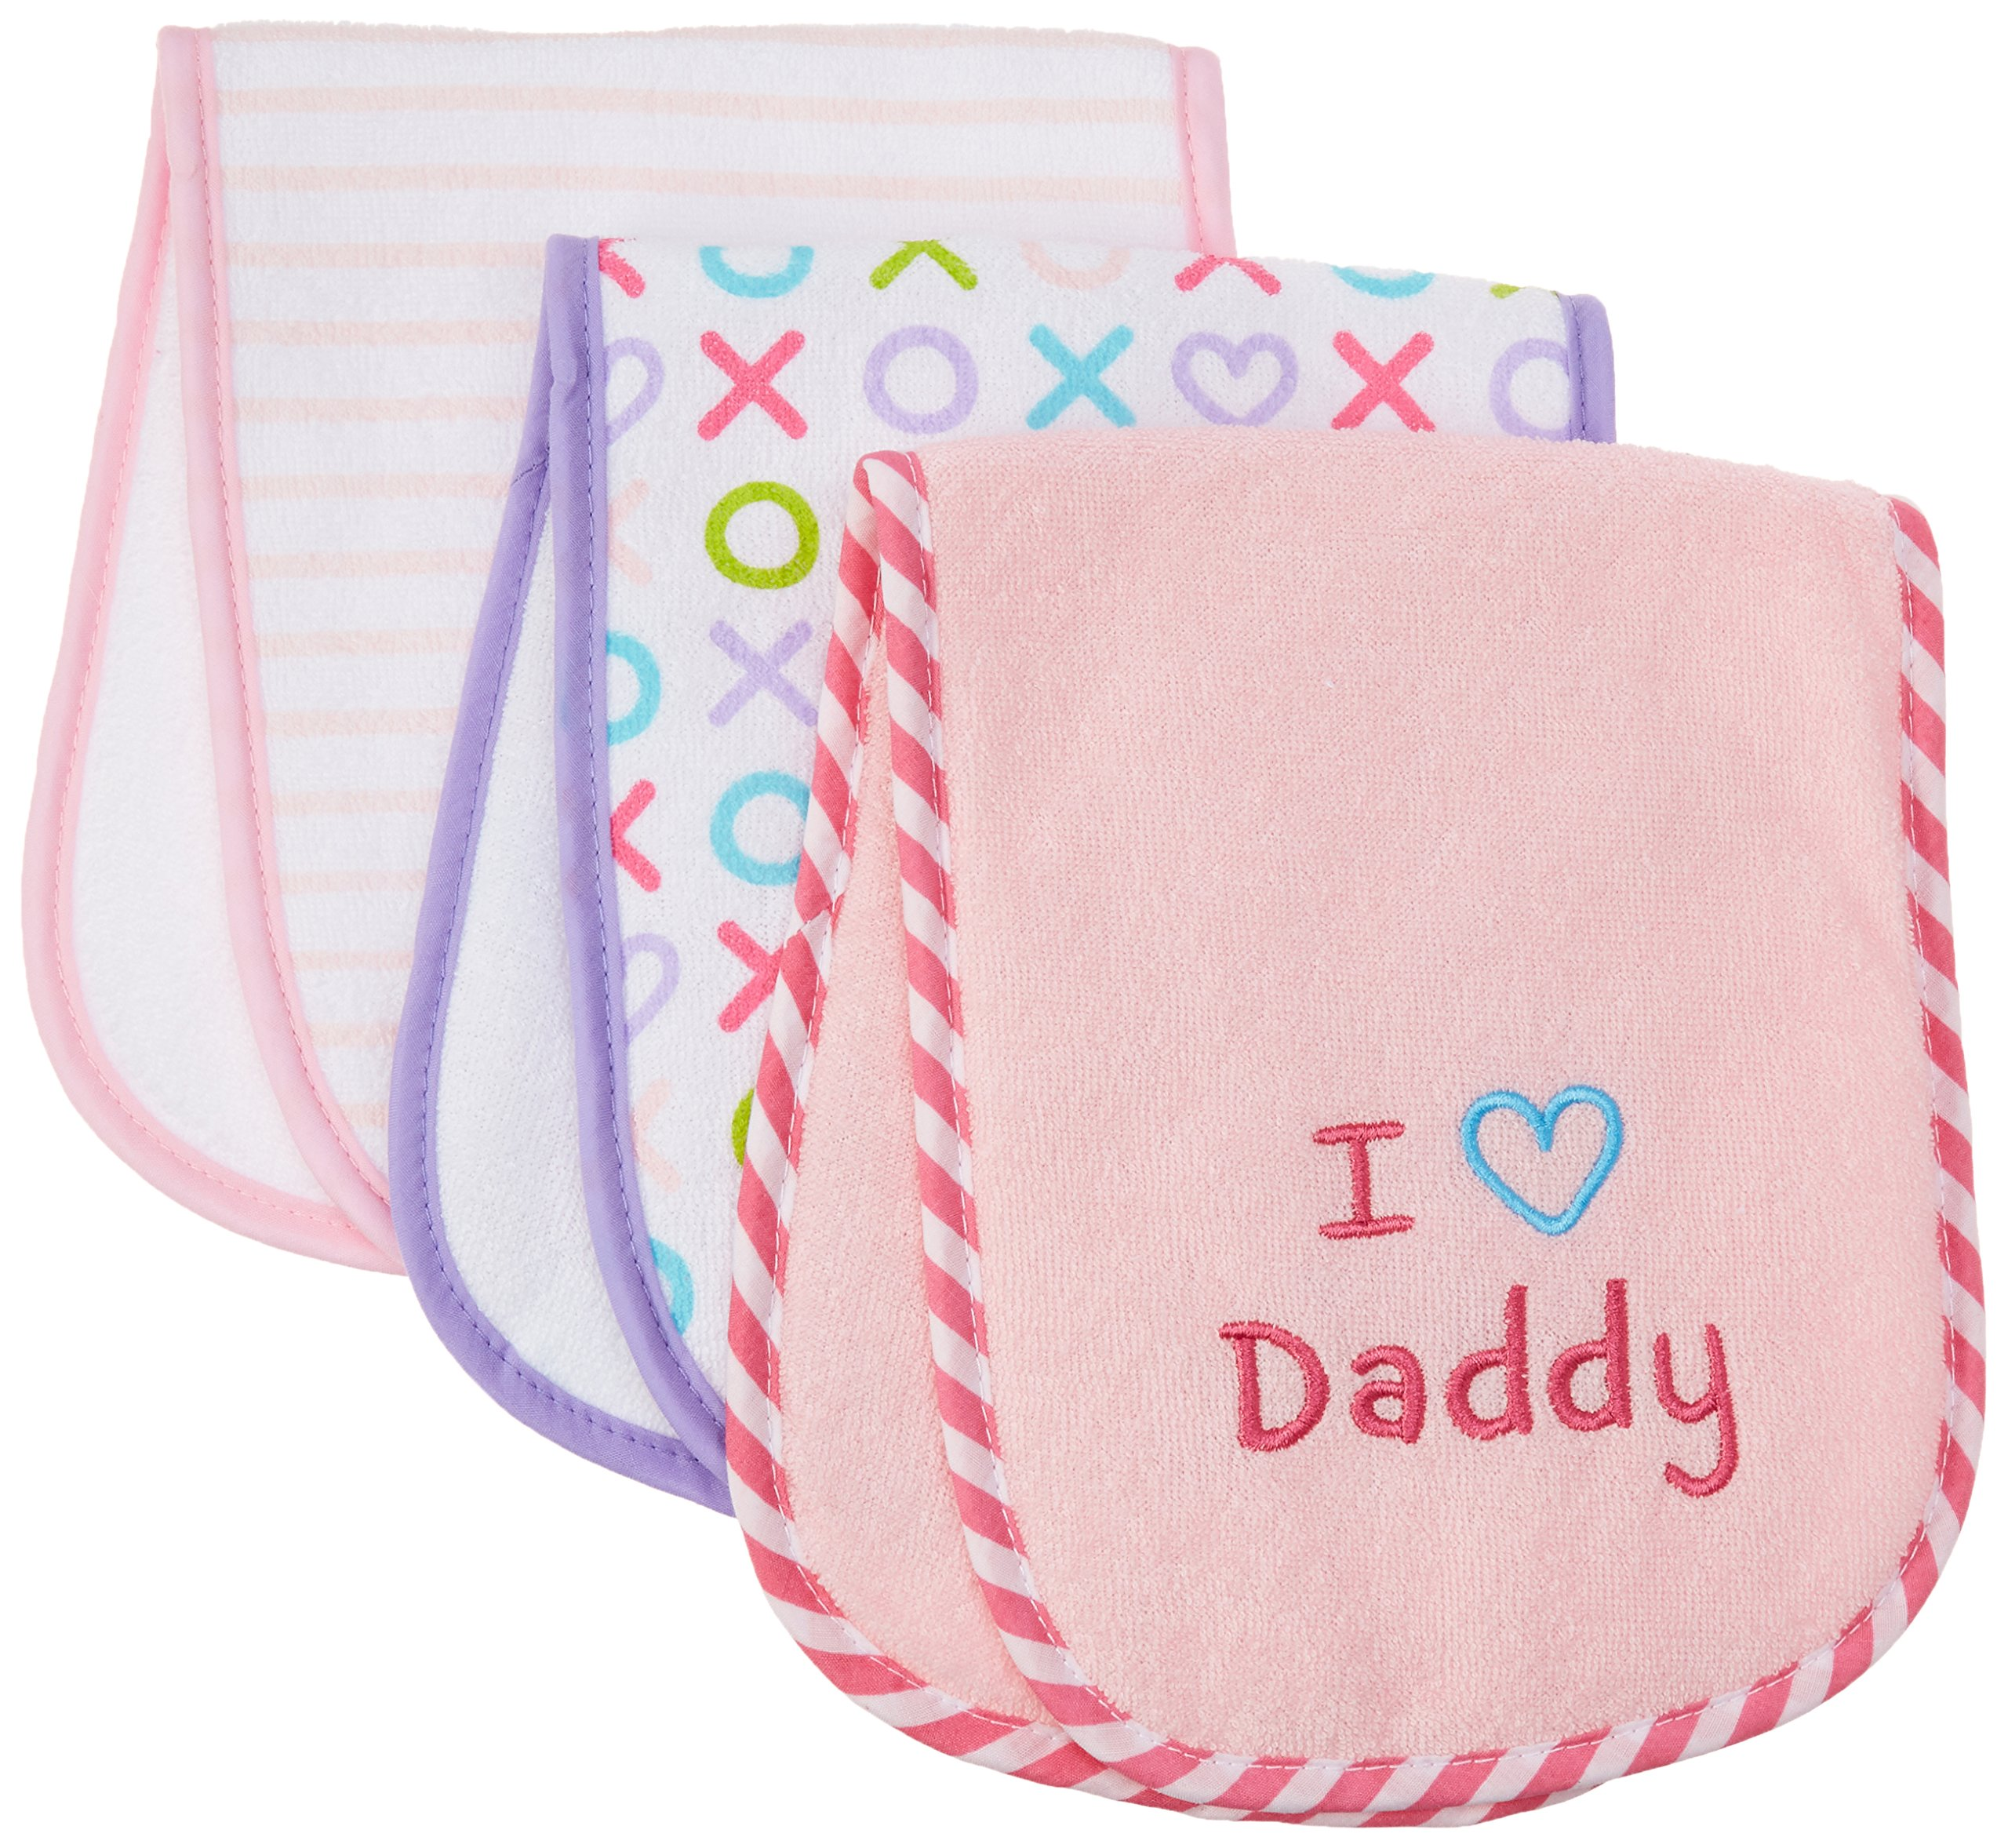 Luvable Friends I Love Mommy and Daddy Baby Burp Cloths, Pink Daddy, 3-Count